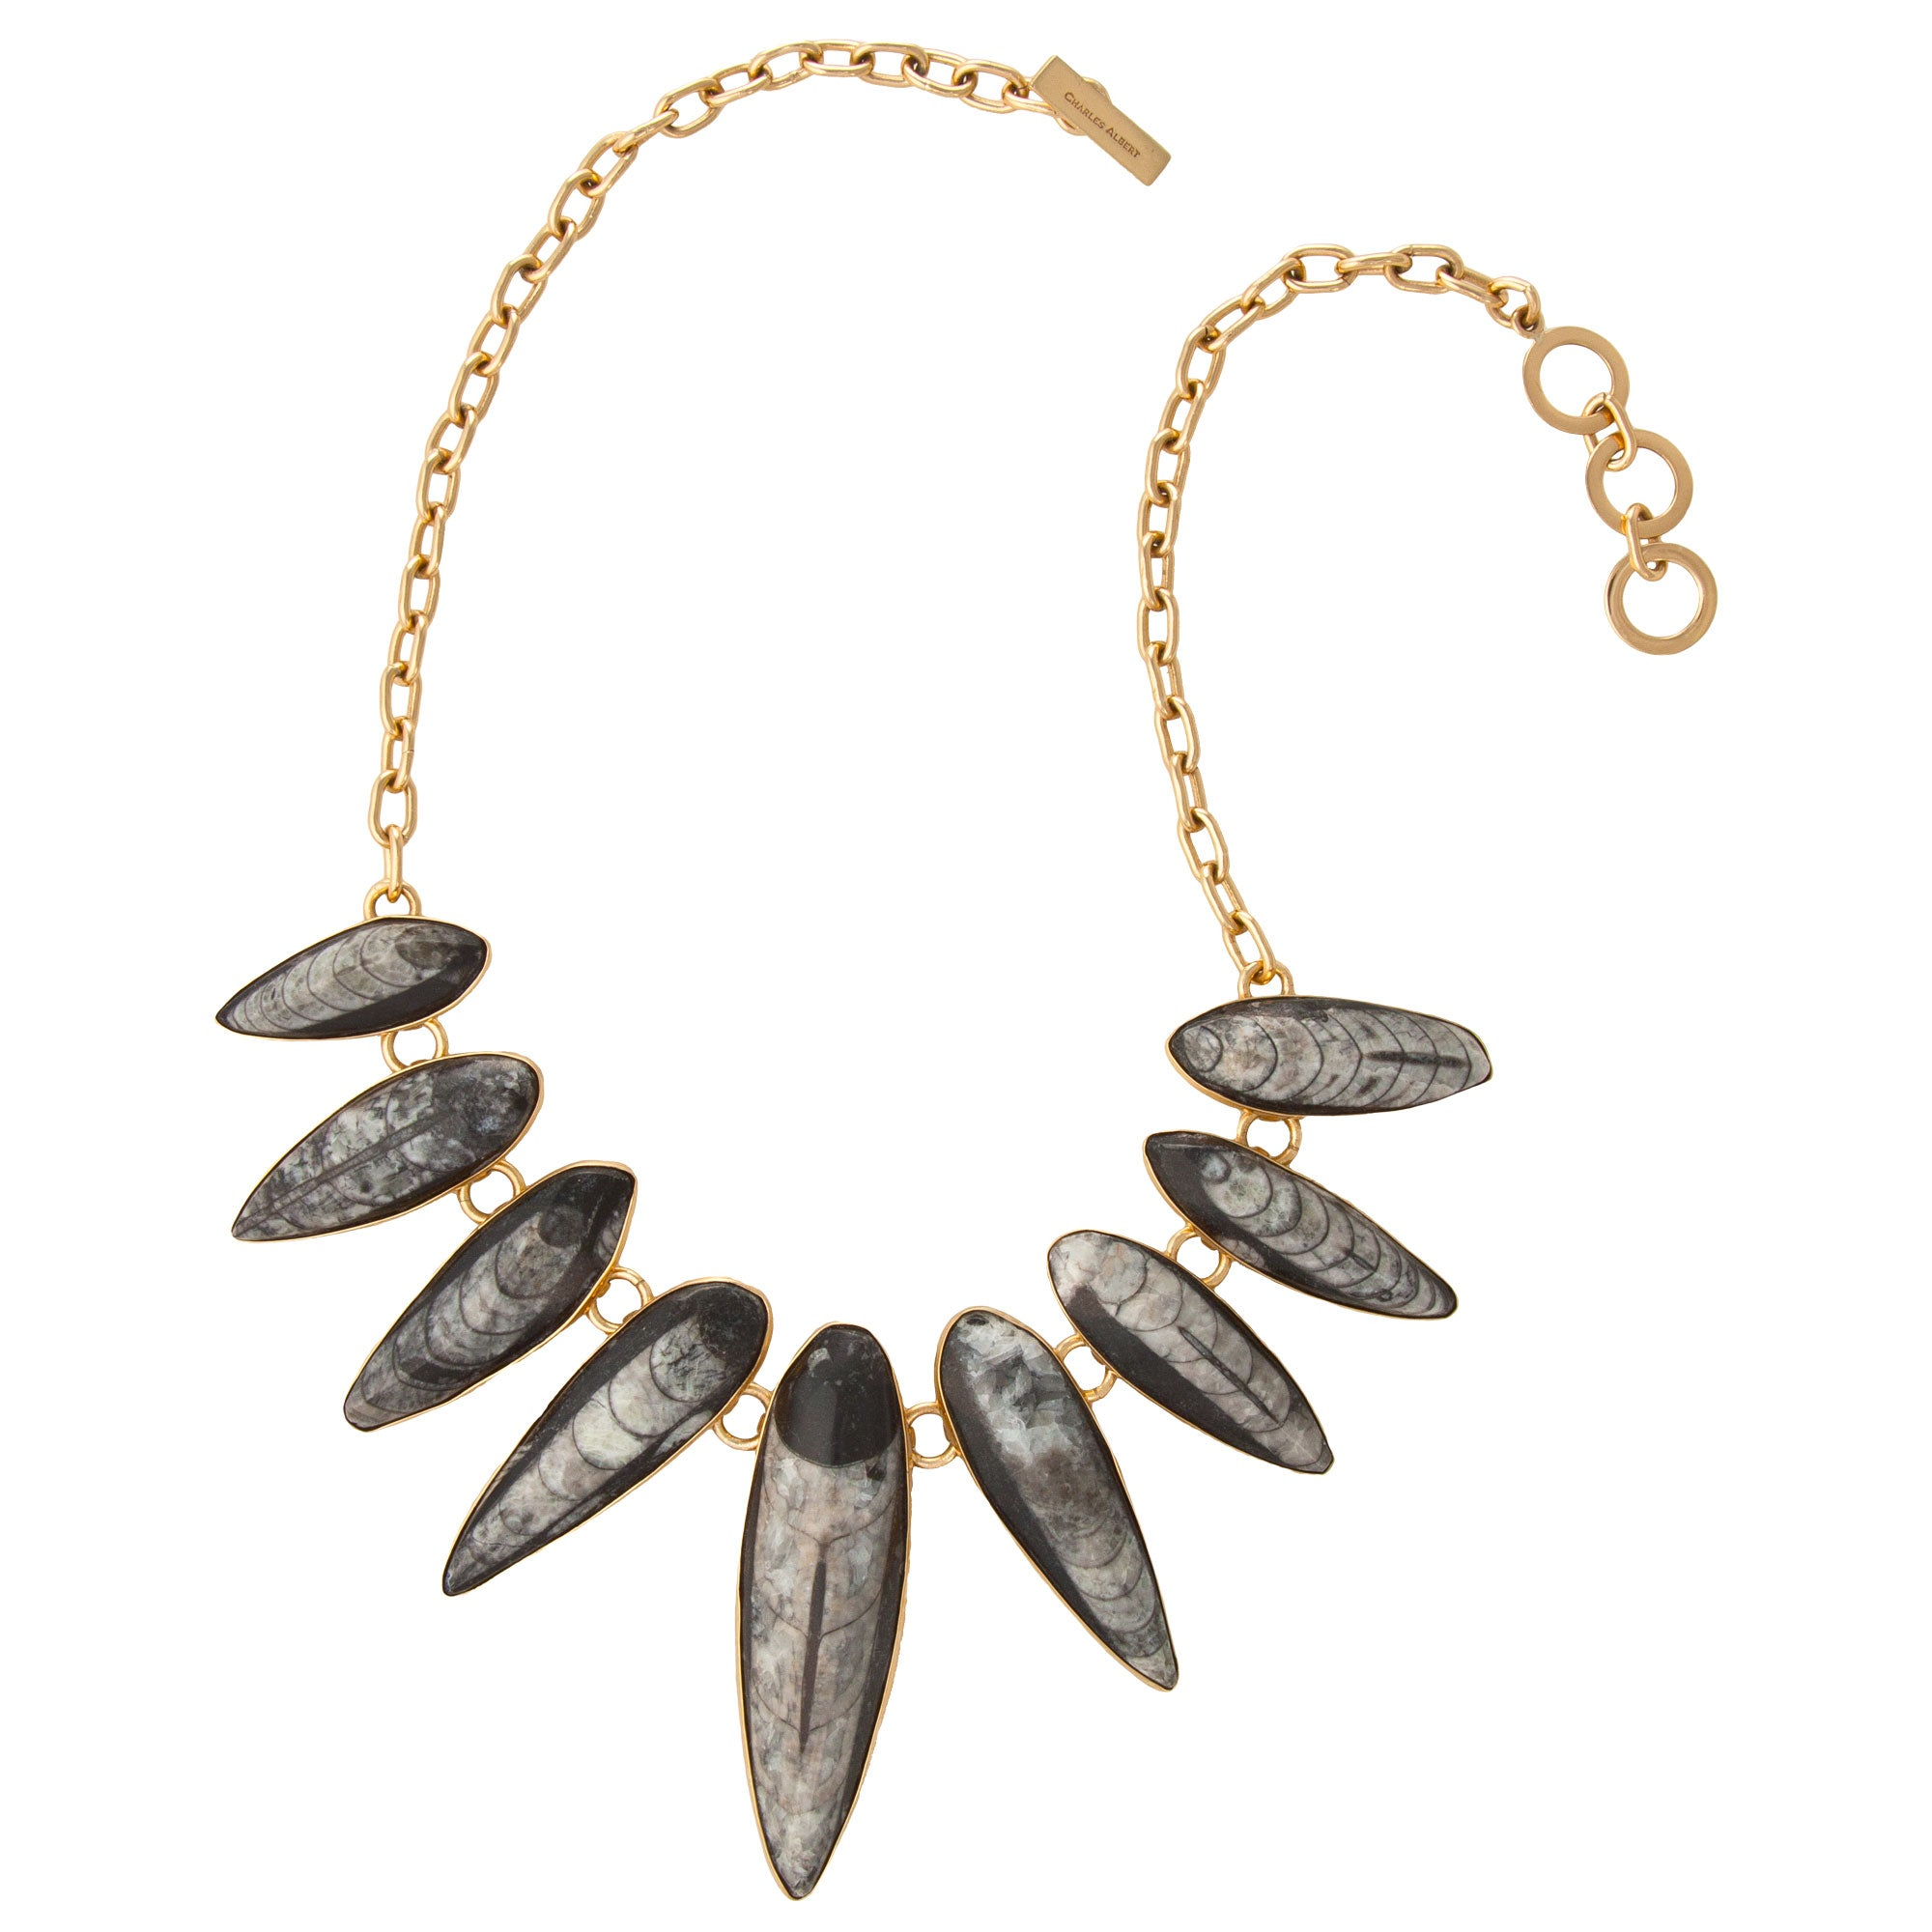 Orthoceras Fossil Necklace | Charles Albert Jewelry